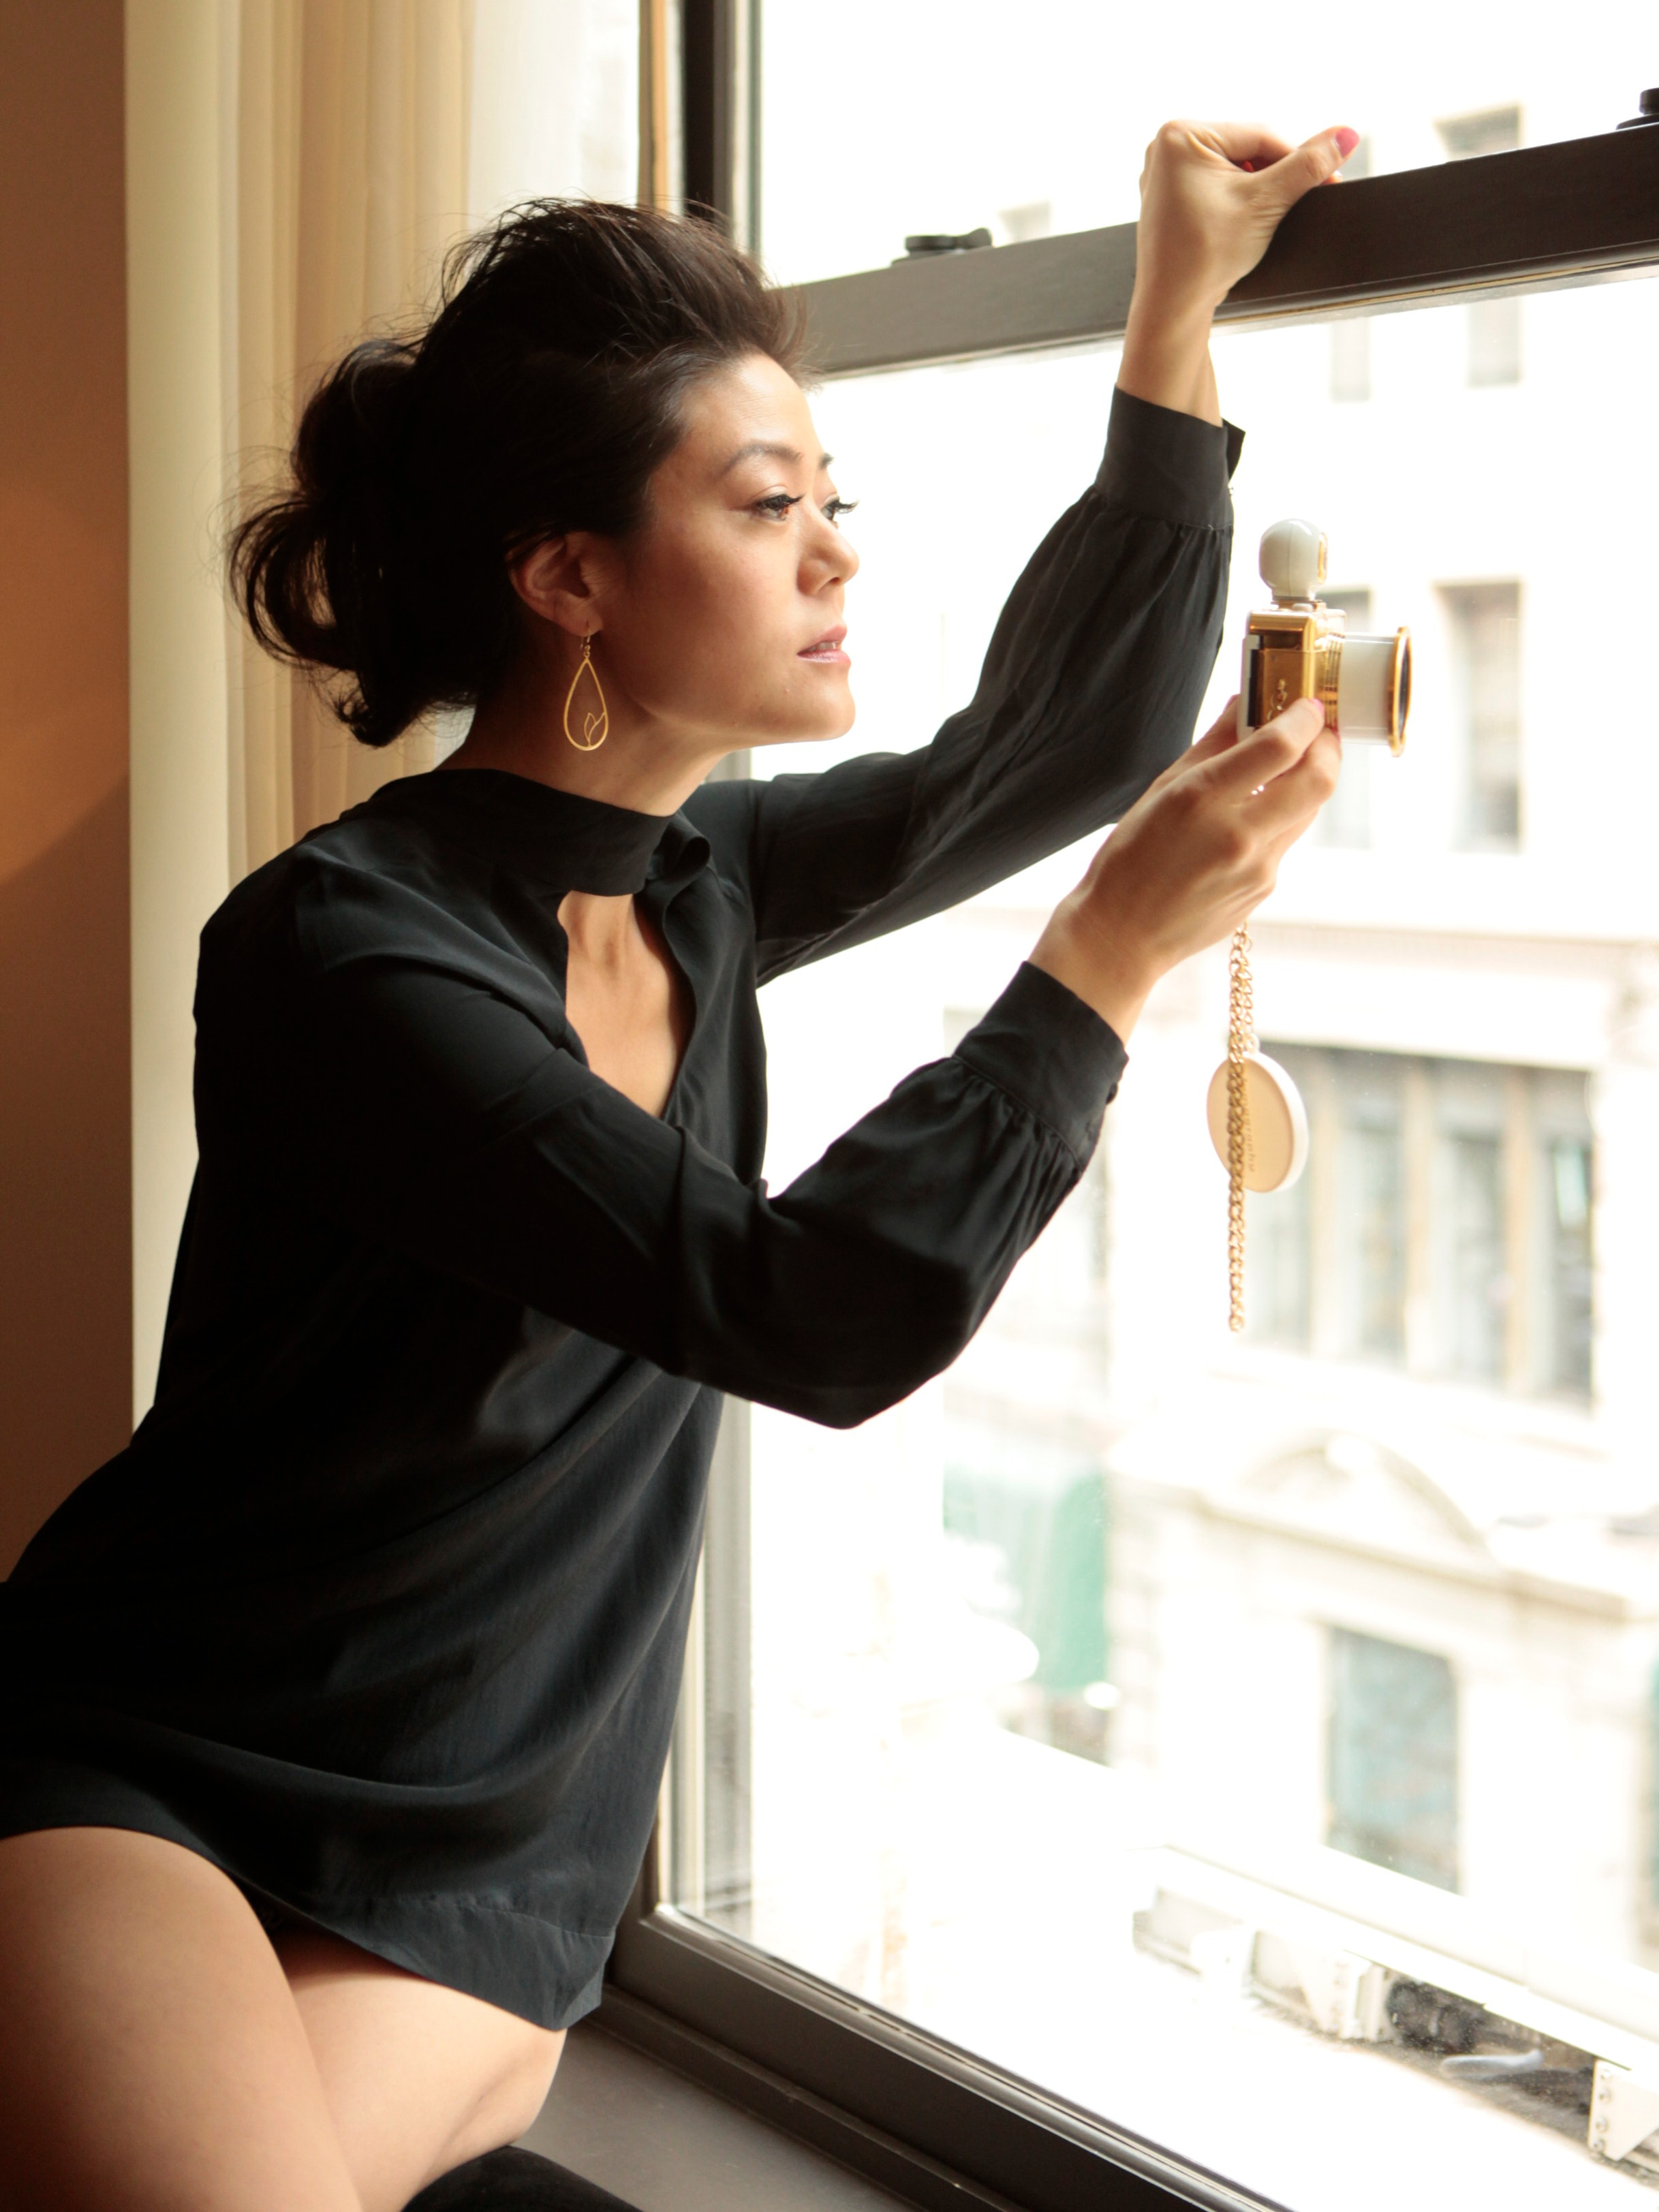 savor beauty founder angela jia kim looking out a window